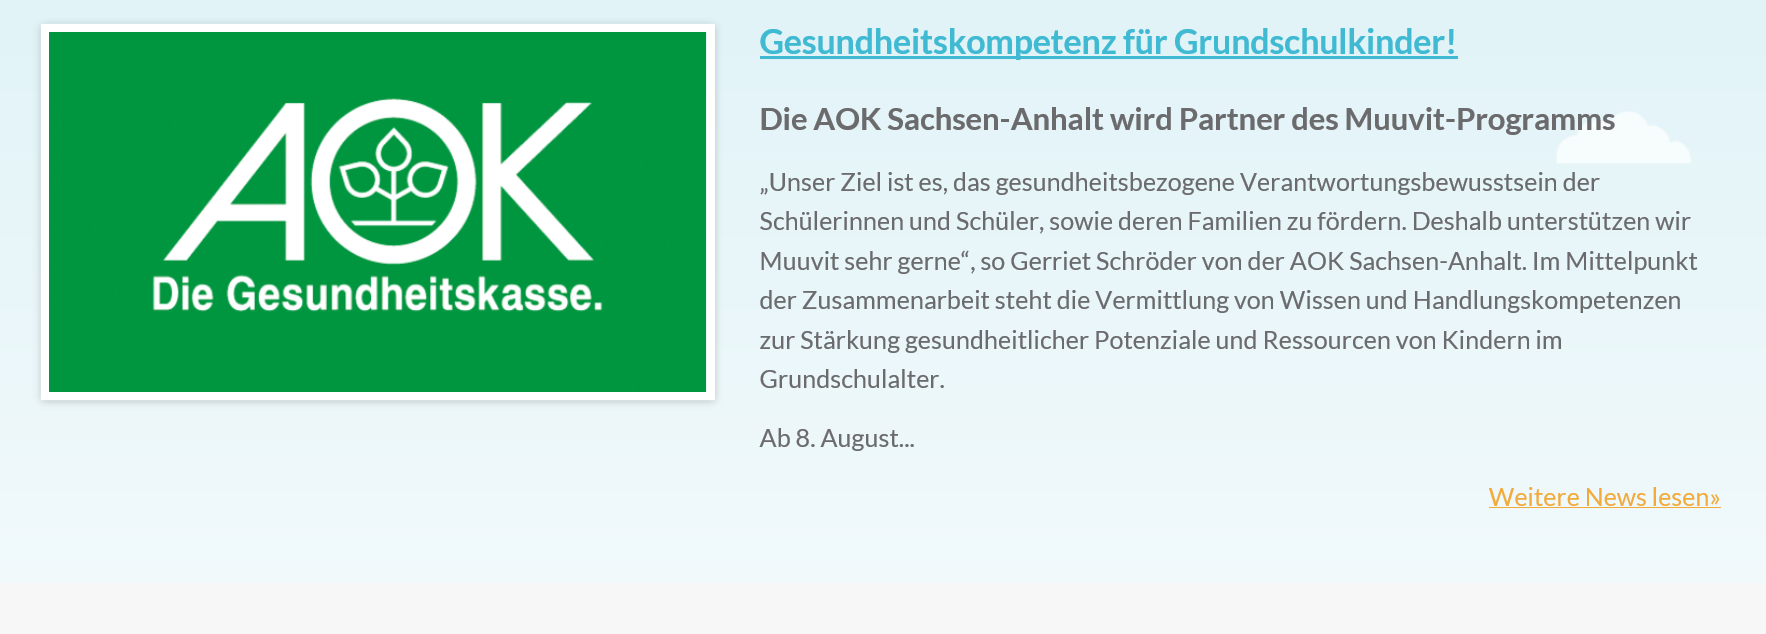 AOK Health Insurance - The German health insurer applies Muuvit as a health promotion and community engagement tool. Special focus on primary school children in Sachsen-Anhalt.